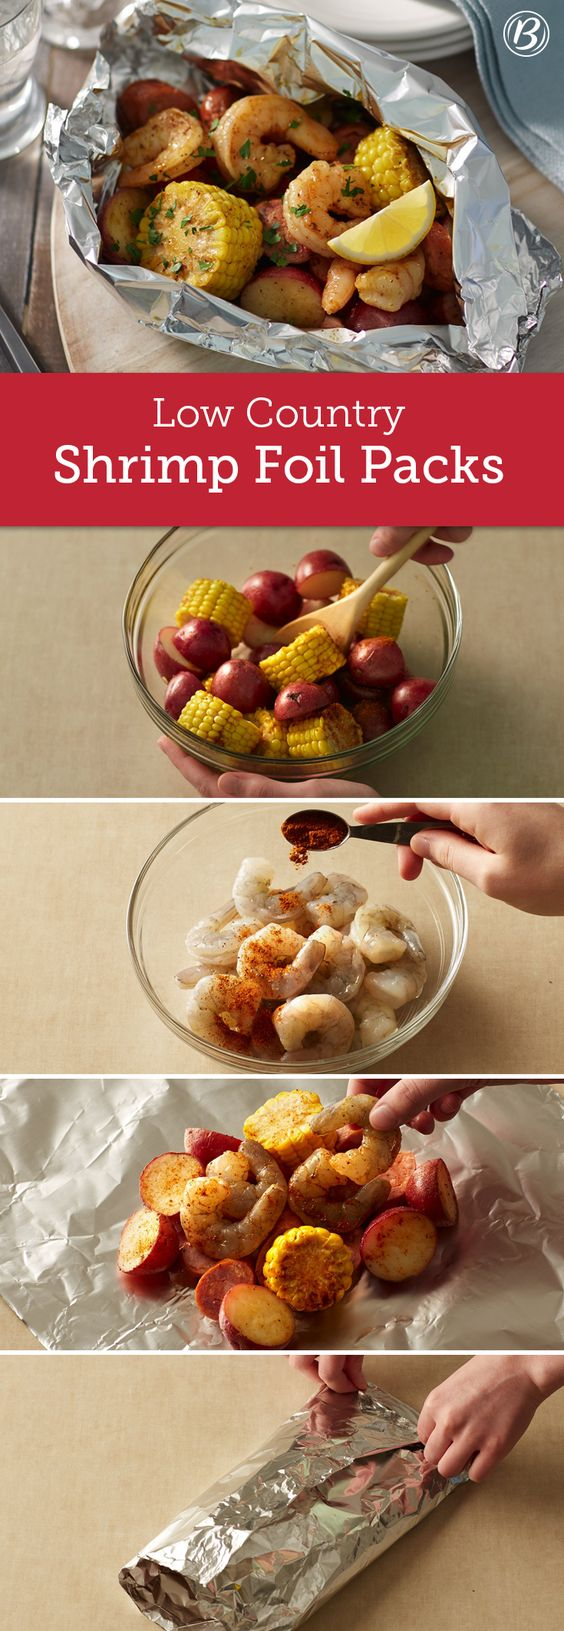 Low Country Shrimp Foil Packs | Recipe | Baby Red Potatoes ...